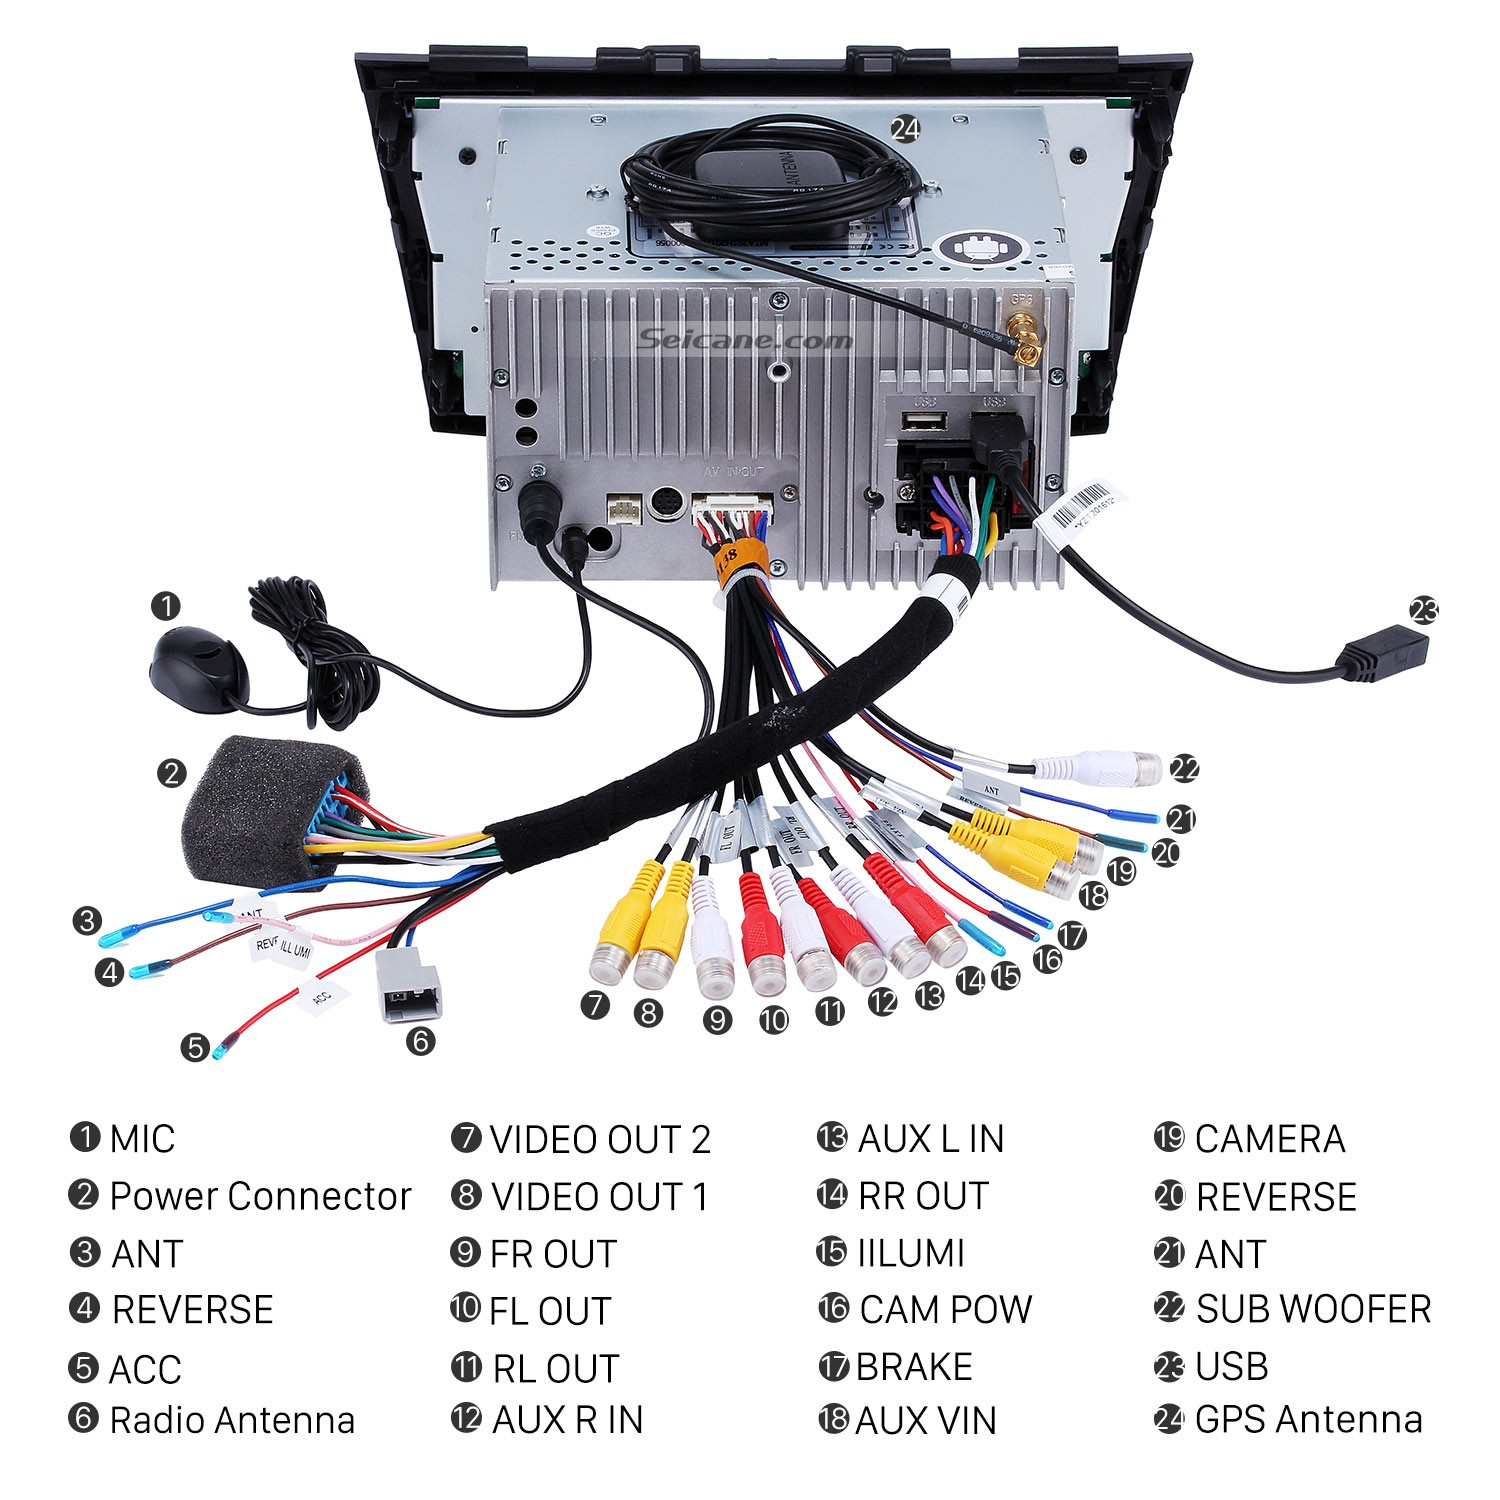 Suzuki Swift 2010 Stereo Wiring Diagram - Wiring Diagram